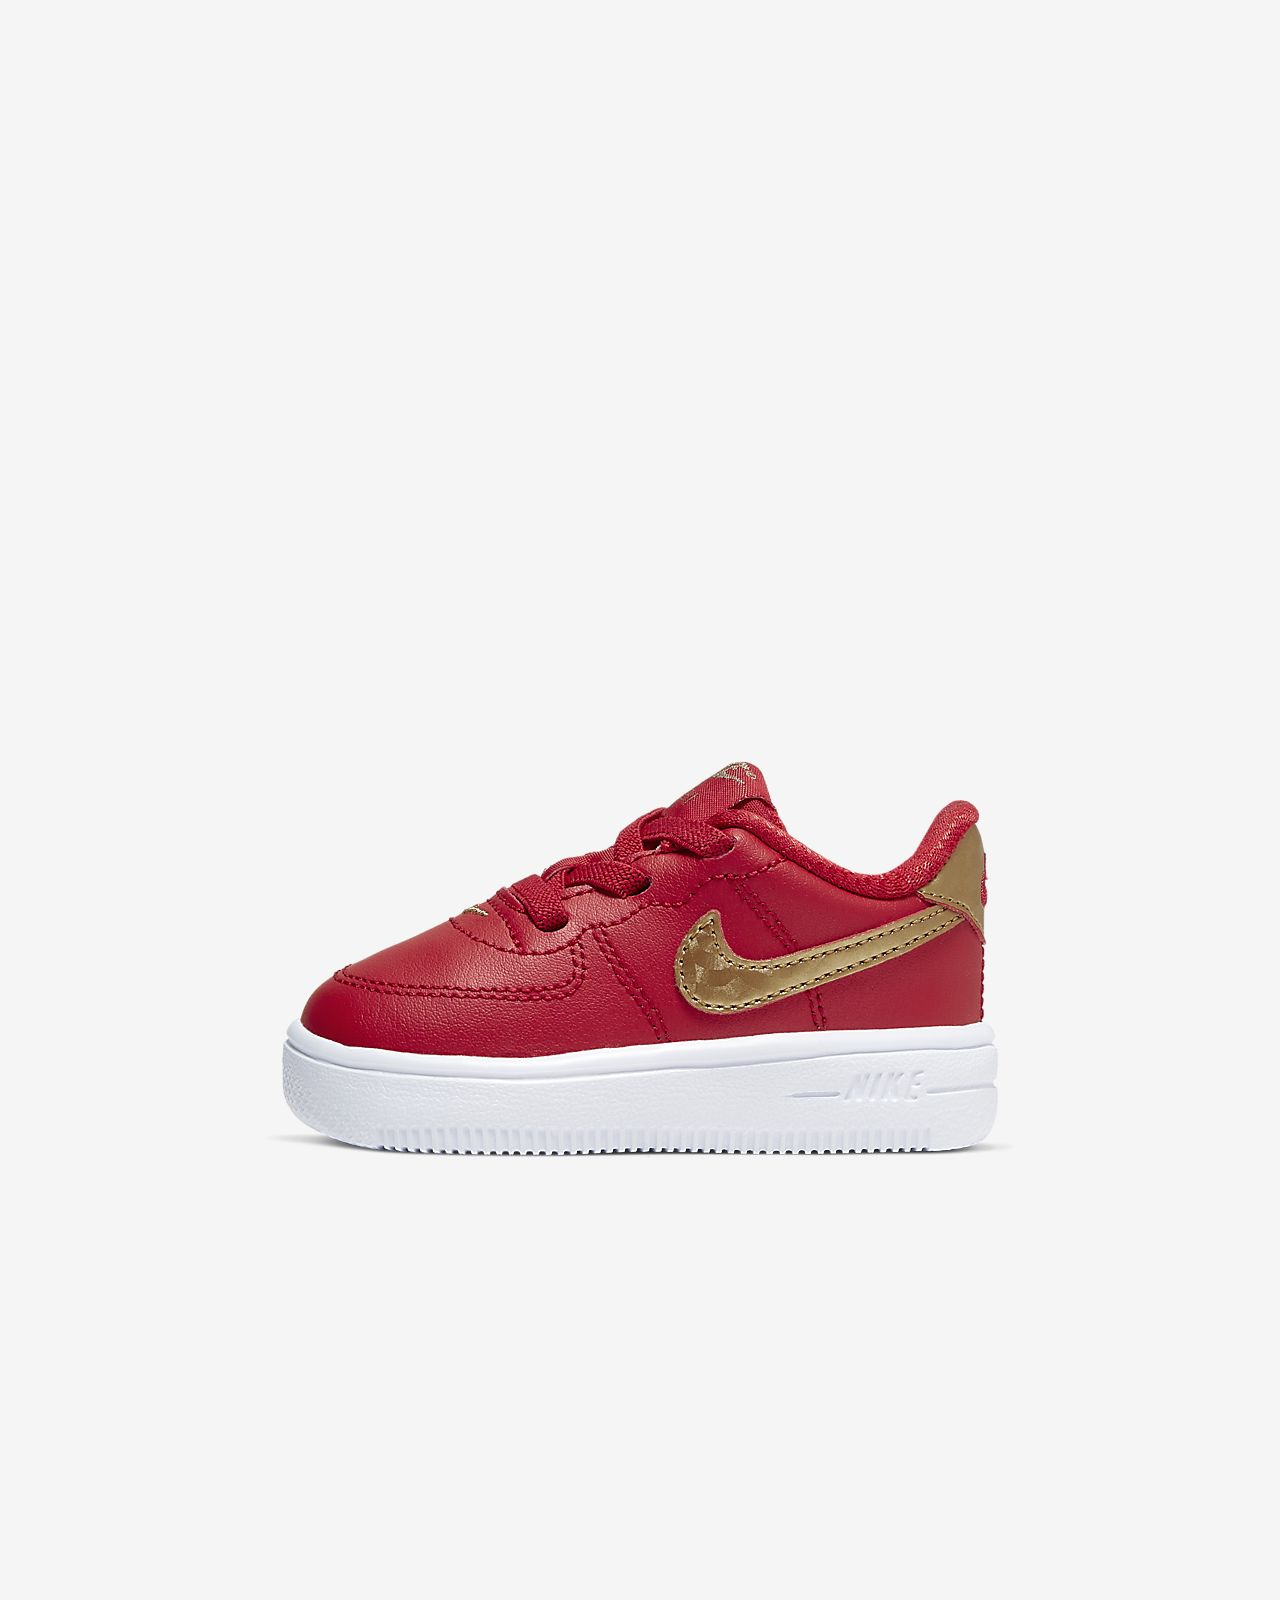 Nike Force 1 '18 Baby & Toddler Shoe